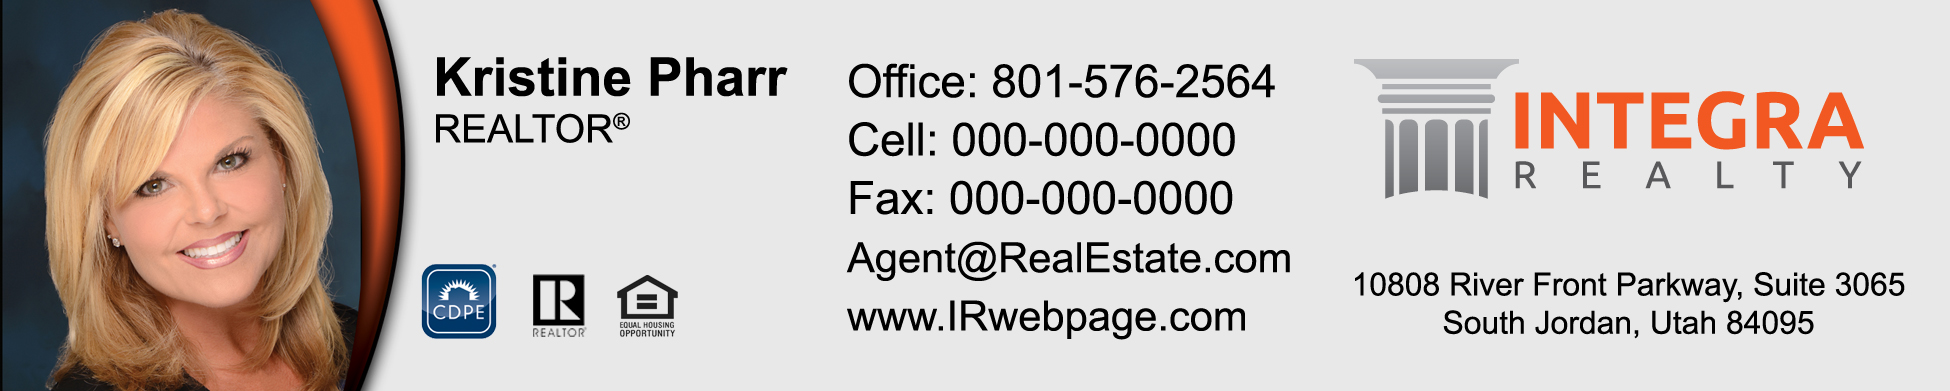 Integra Realty Business Cards - $6999 professionally designed and